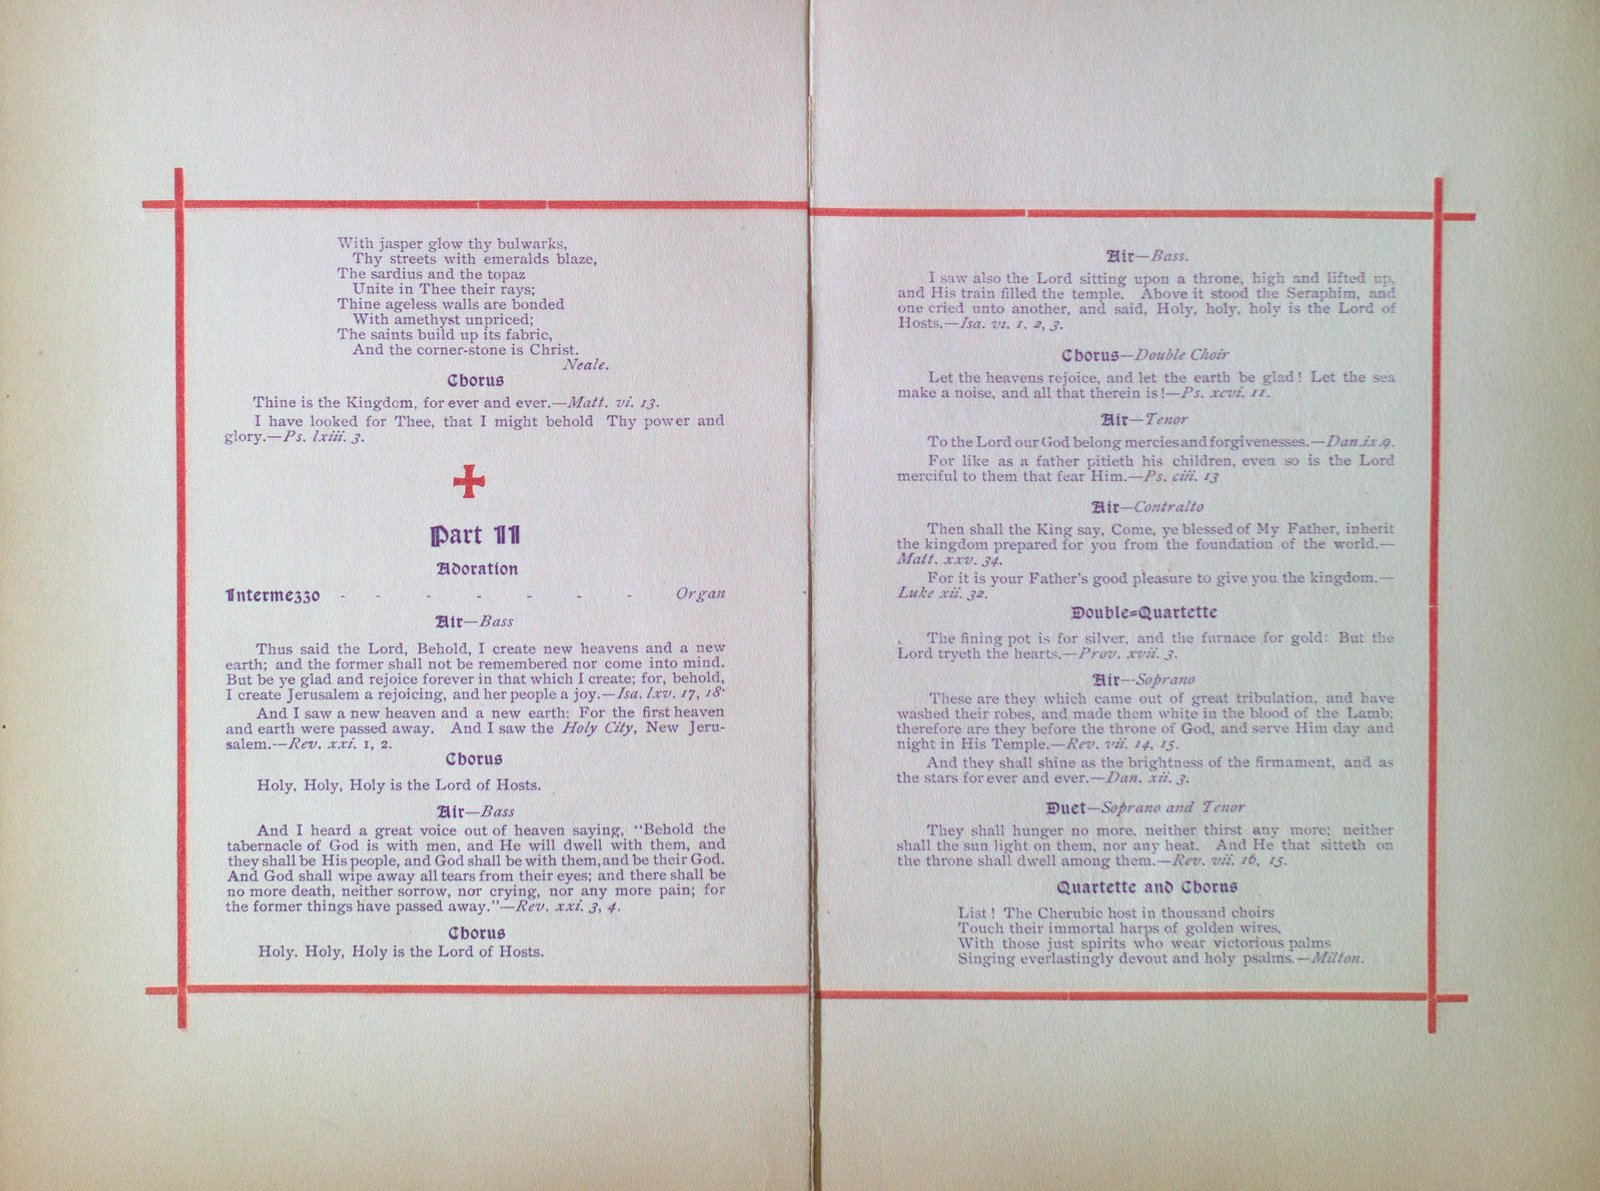 Teresa Vanderburgh's Musical Scrapbook #2 - St. Thomas' Church Musical Service